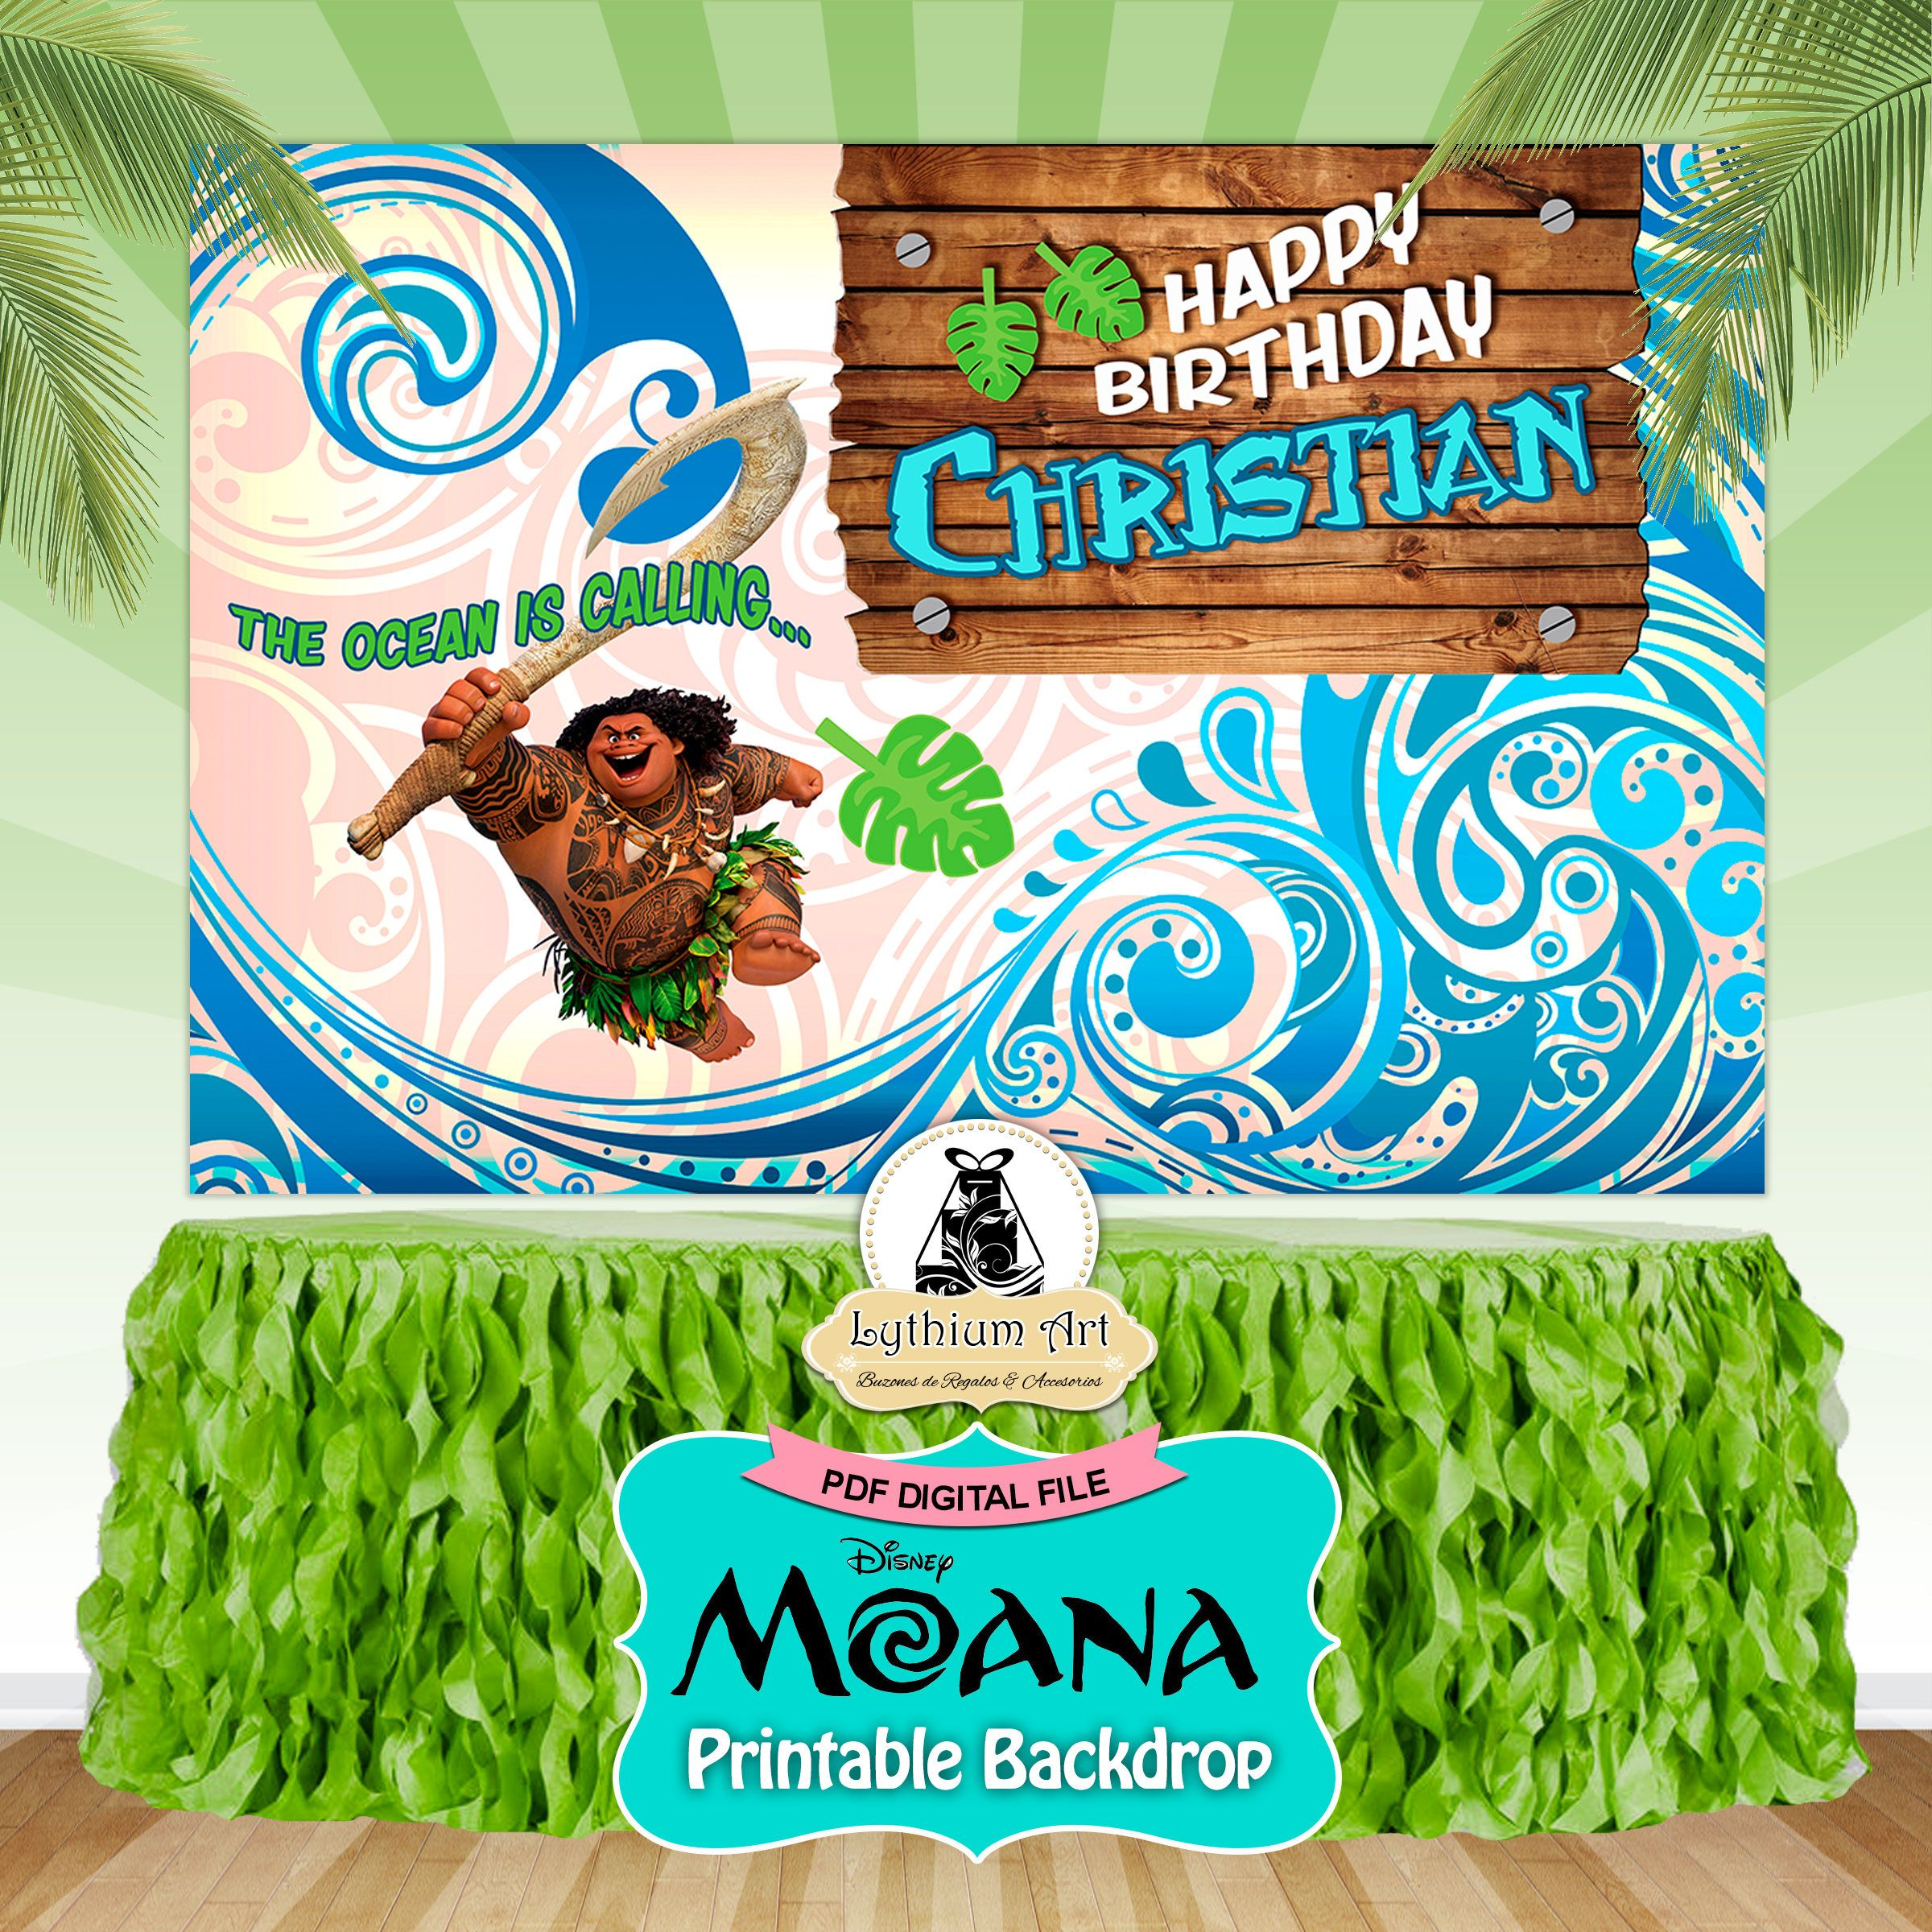 Printable airplane party backdrops party decorations diy template - Themed Parties Maui Backdrop Maui Printable Backdrop Maui Decorations Sweet Table Decoration Maui Birthday